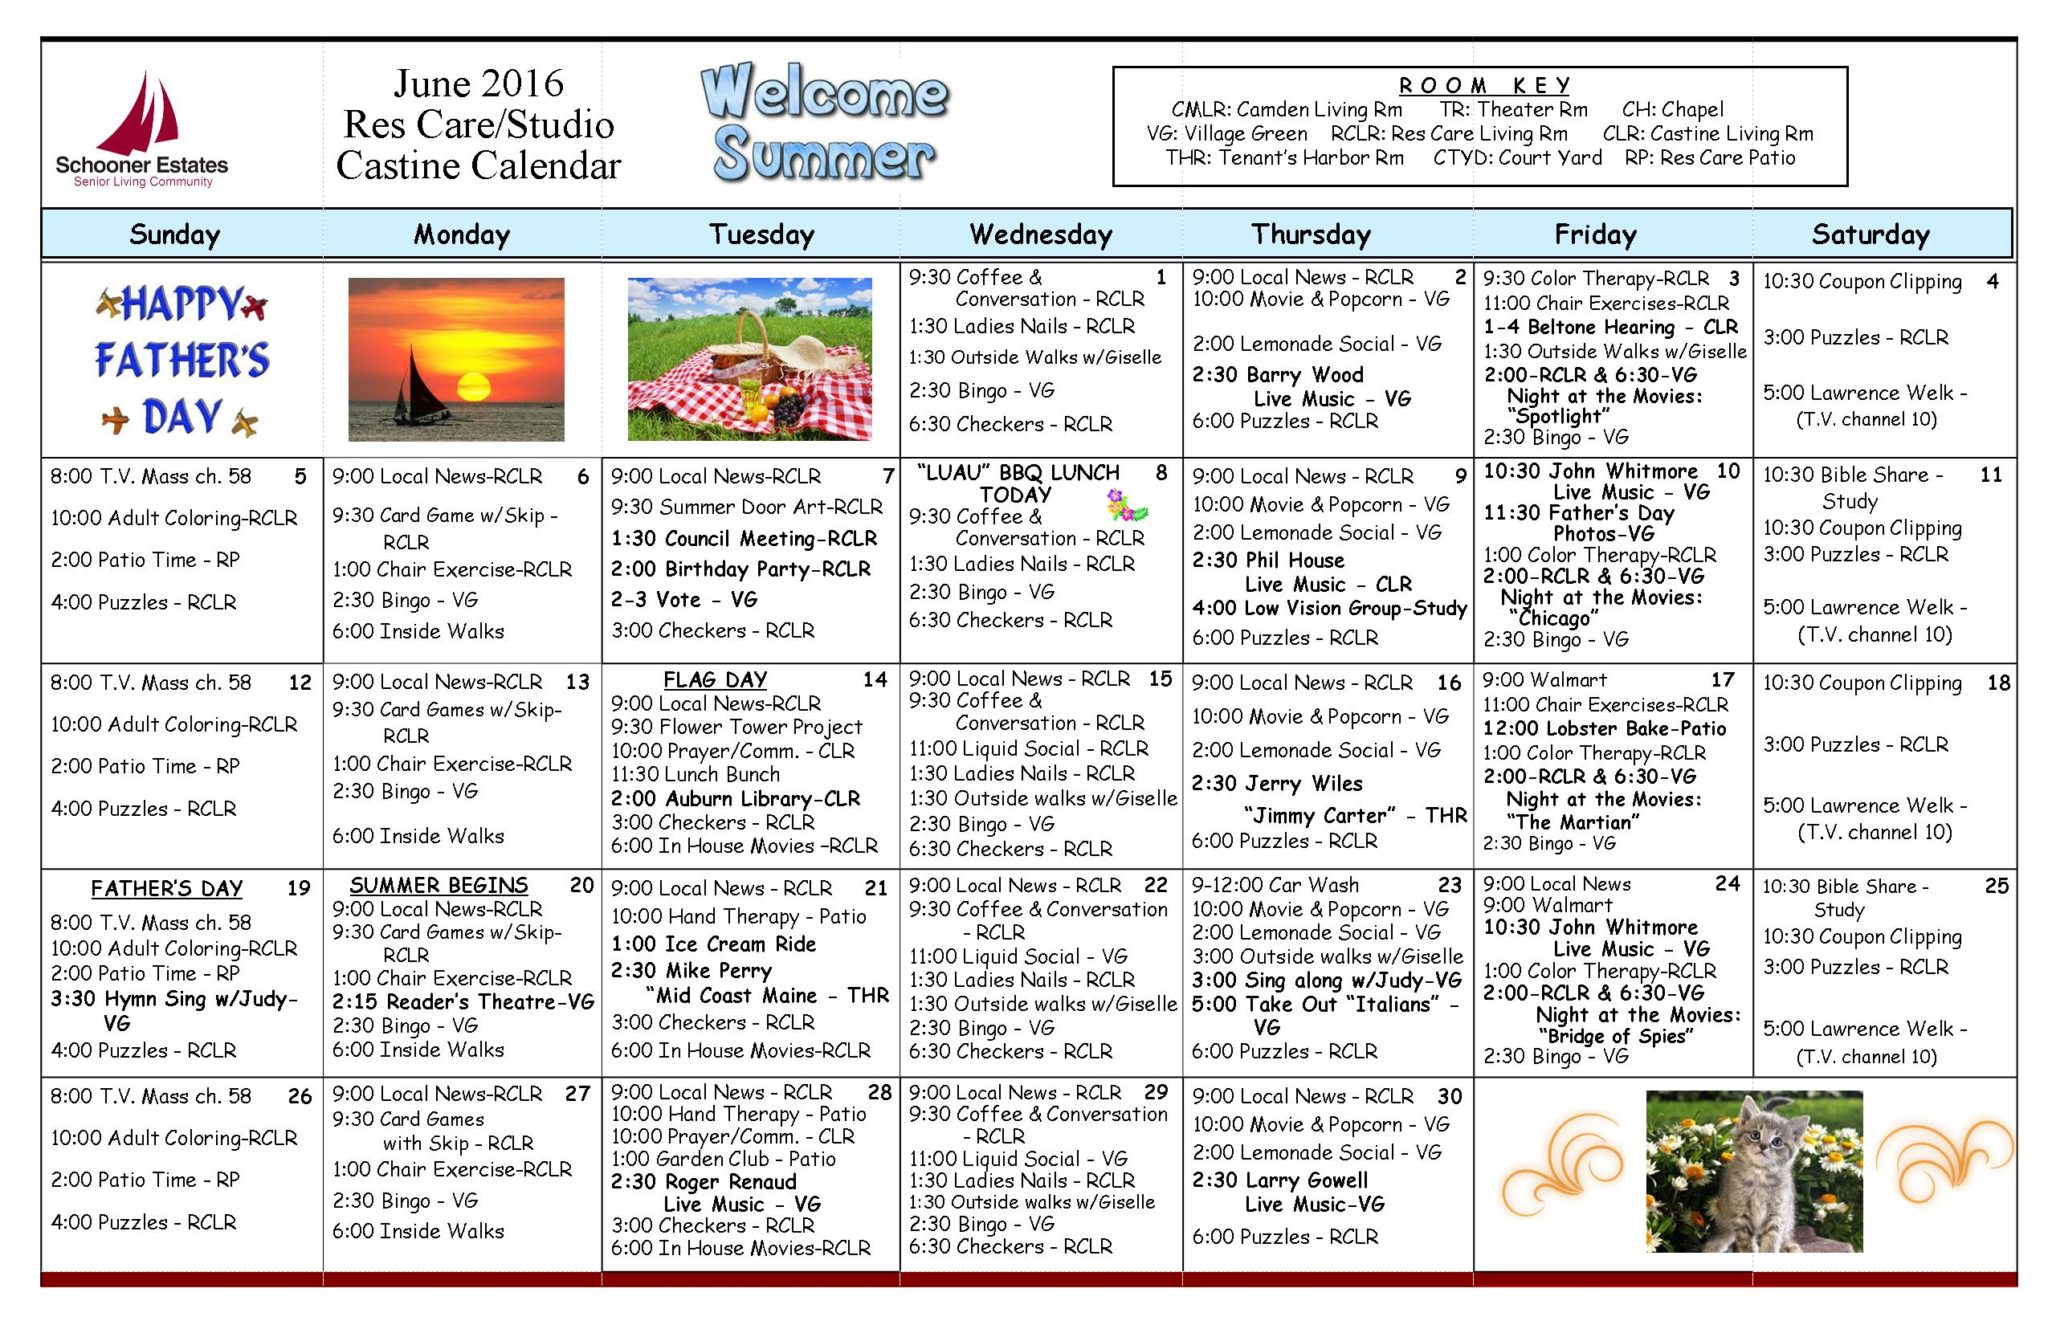 June 2016 Assisted Living and Residential Care Activity Calendar